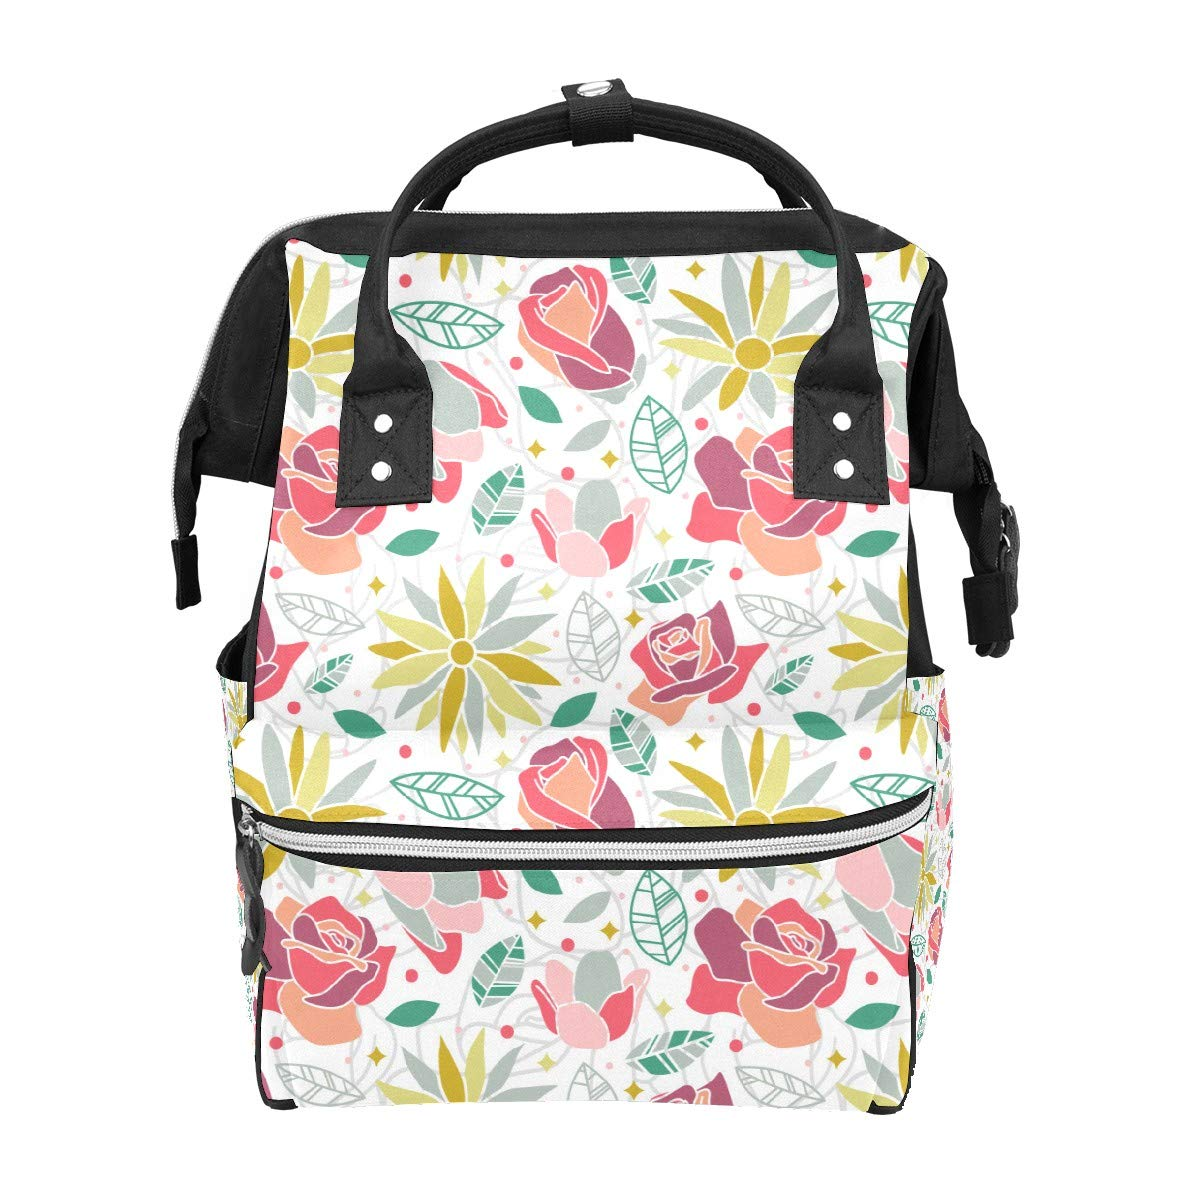 Diaper Bag Backpack Flower Blossom Rose Daisy Seamless Pattern Background Multifunction Travel Back Pack Baby Changing Bags Large Capacity Waterproof Stylish